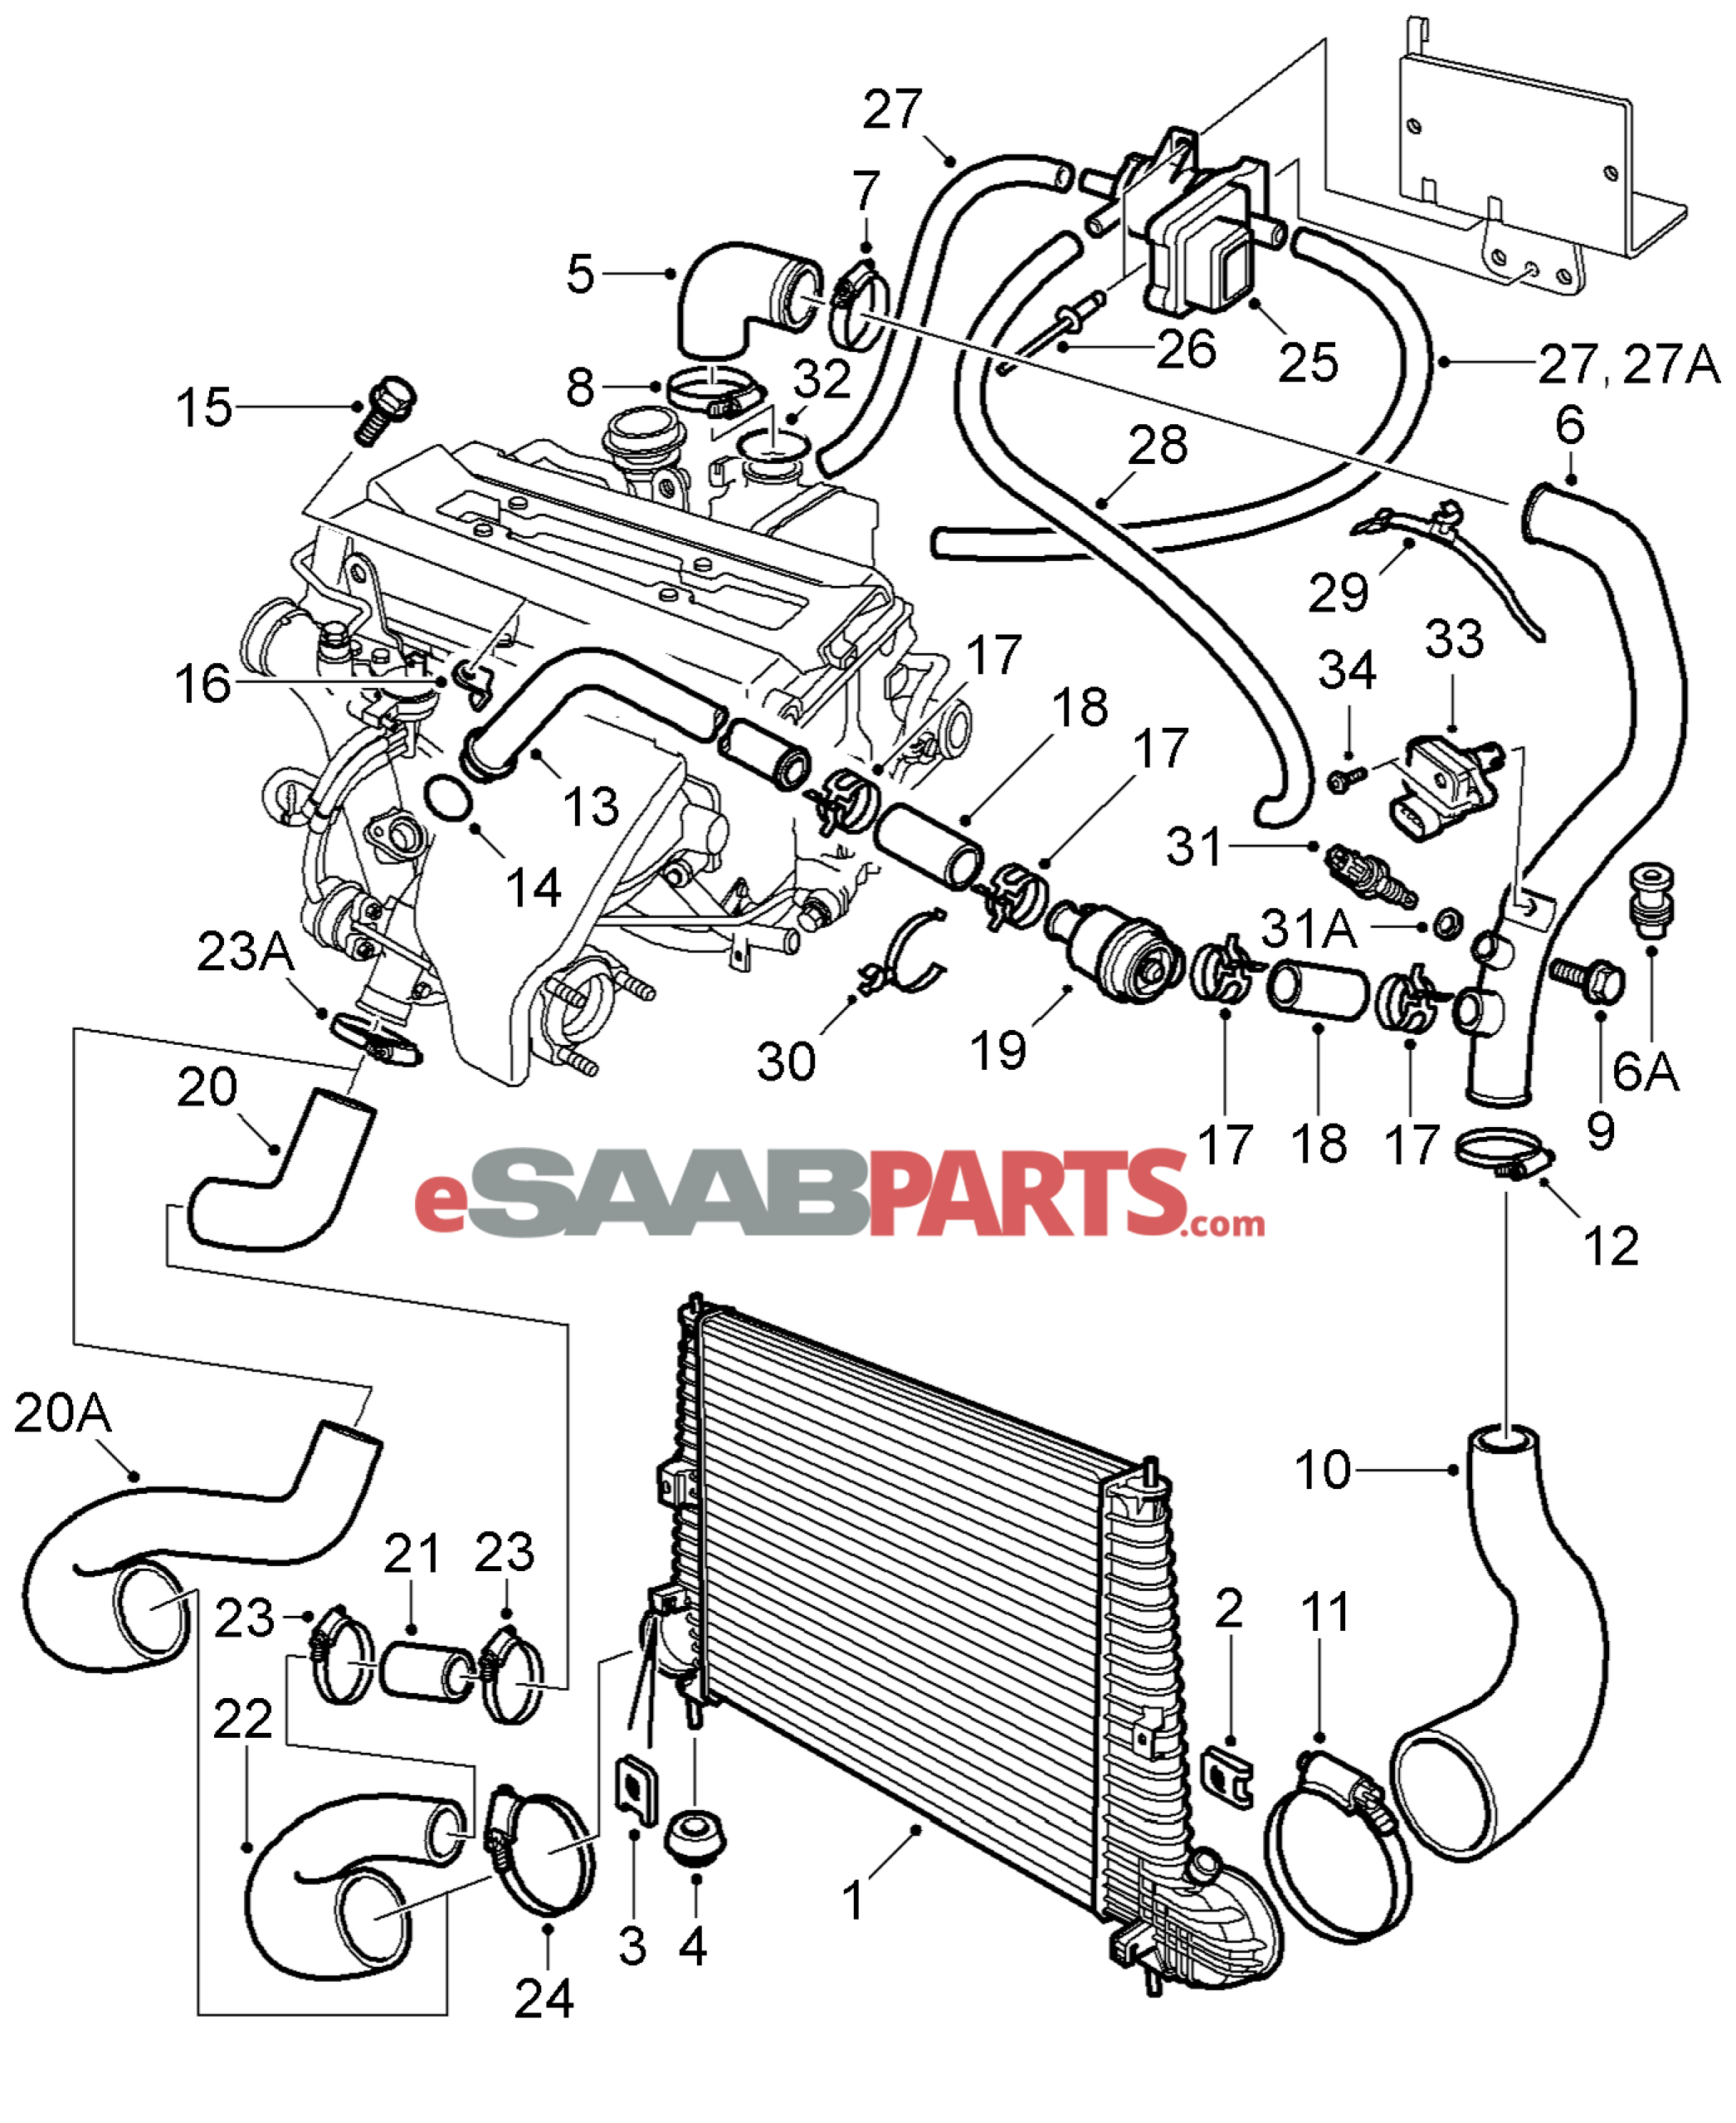 saab 9 3 engine diagram [55562854] saab vacuum valve - genuine saab parts from ...